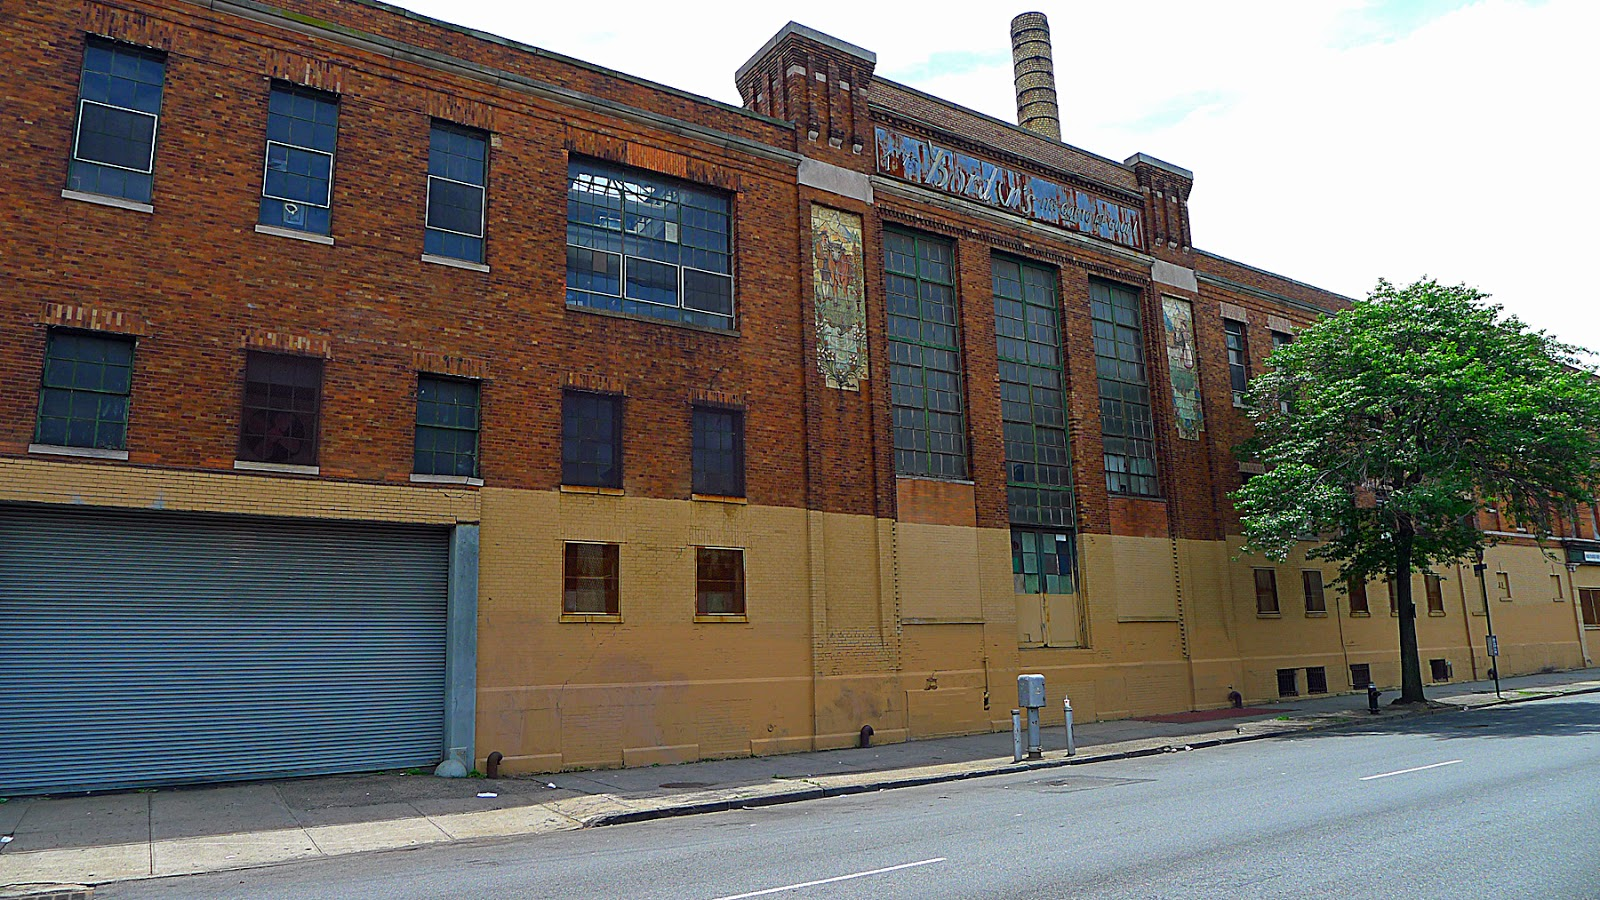 This Is The Atlantic Avenue Facade Of The Main Factory Building Built 1913 15 Designed By Otto Strack With Loading Bay Possibly More Recently Added And